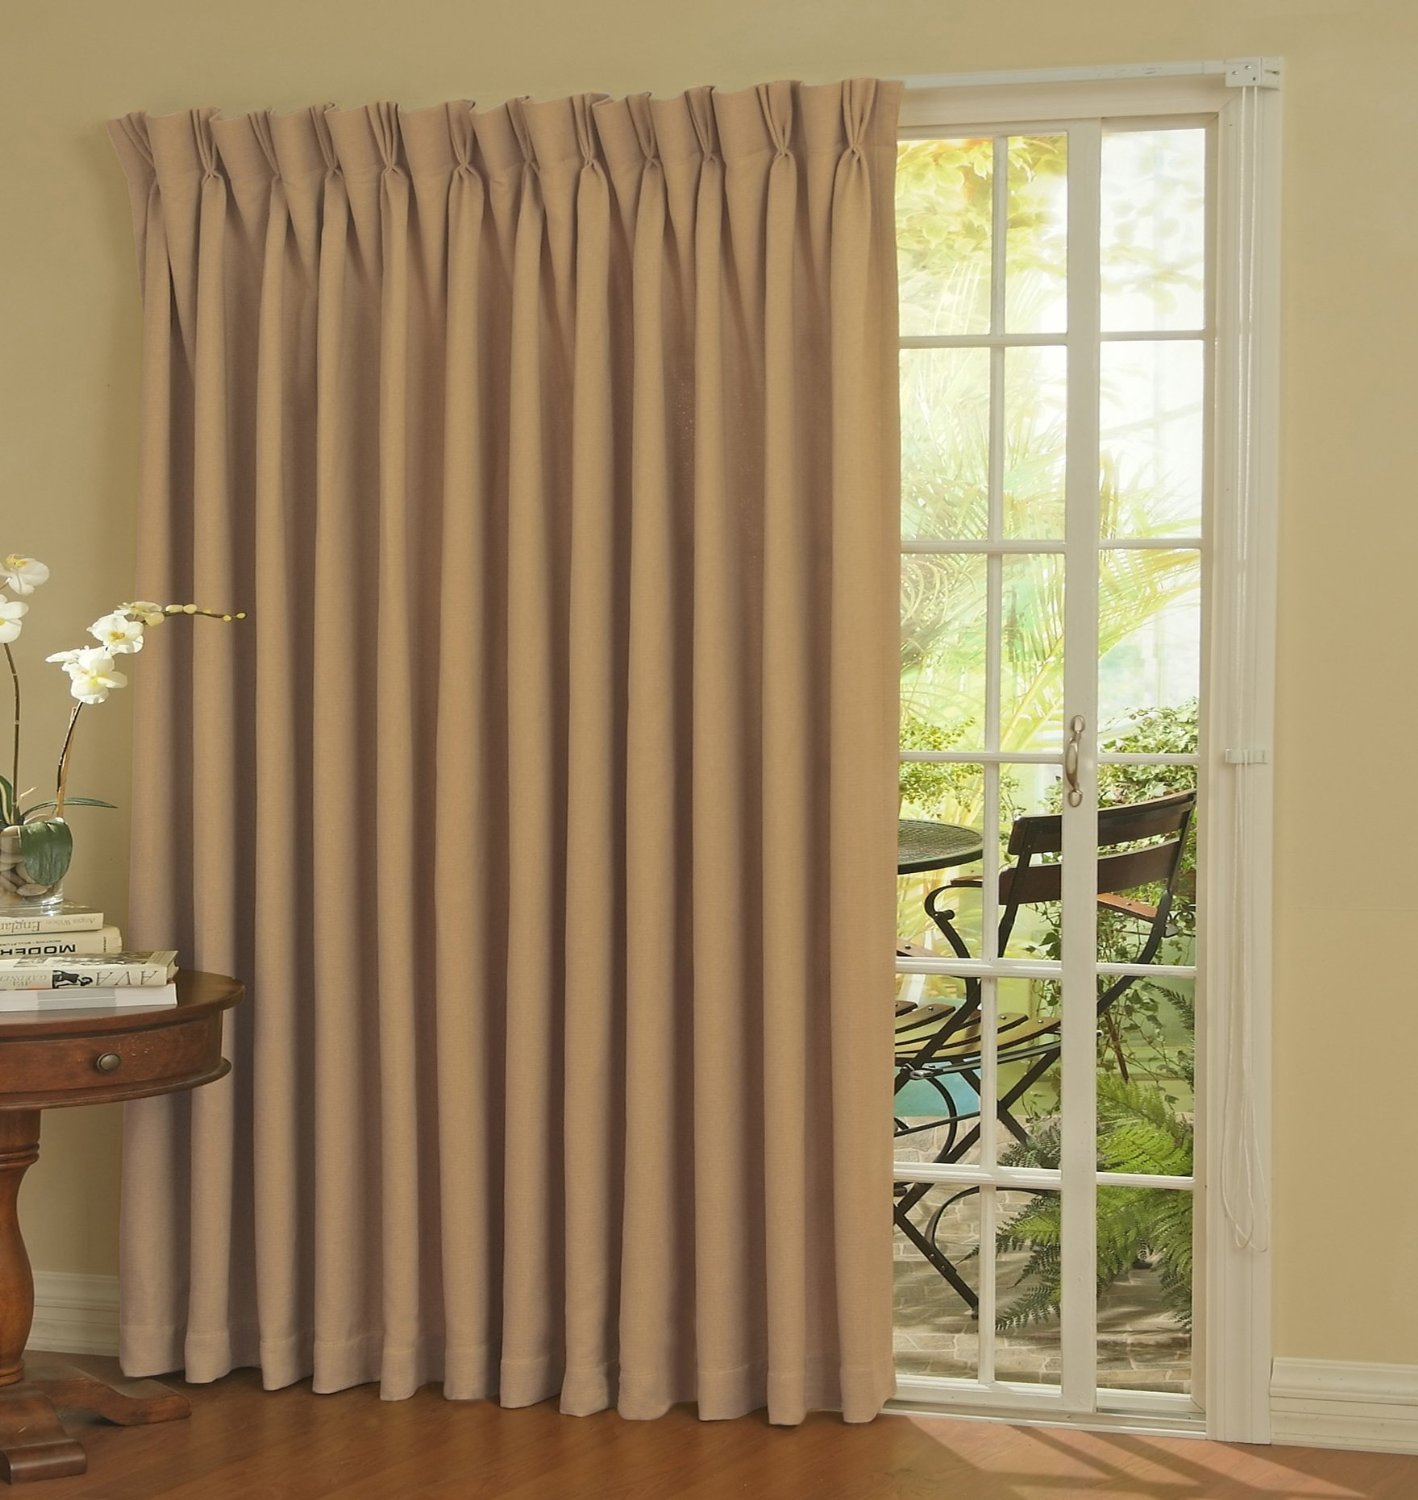 patio door curtain ideas | homesfeed - Patio Curtains Ideas